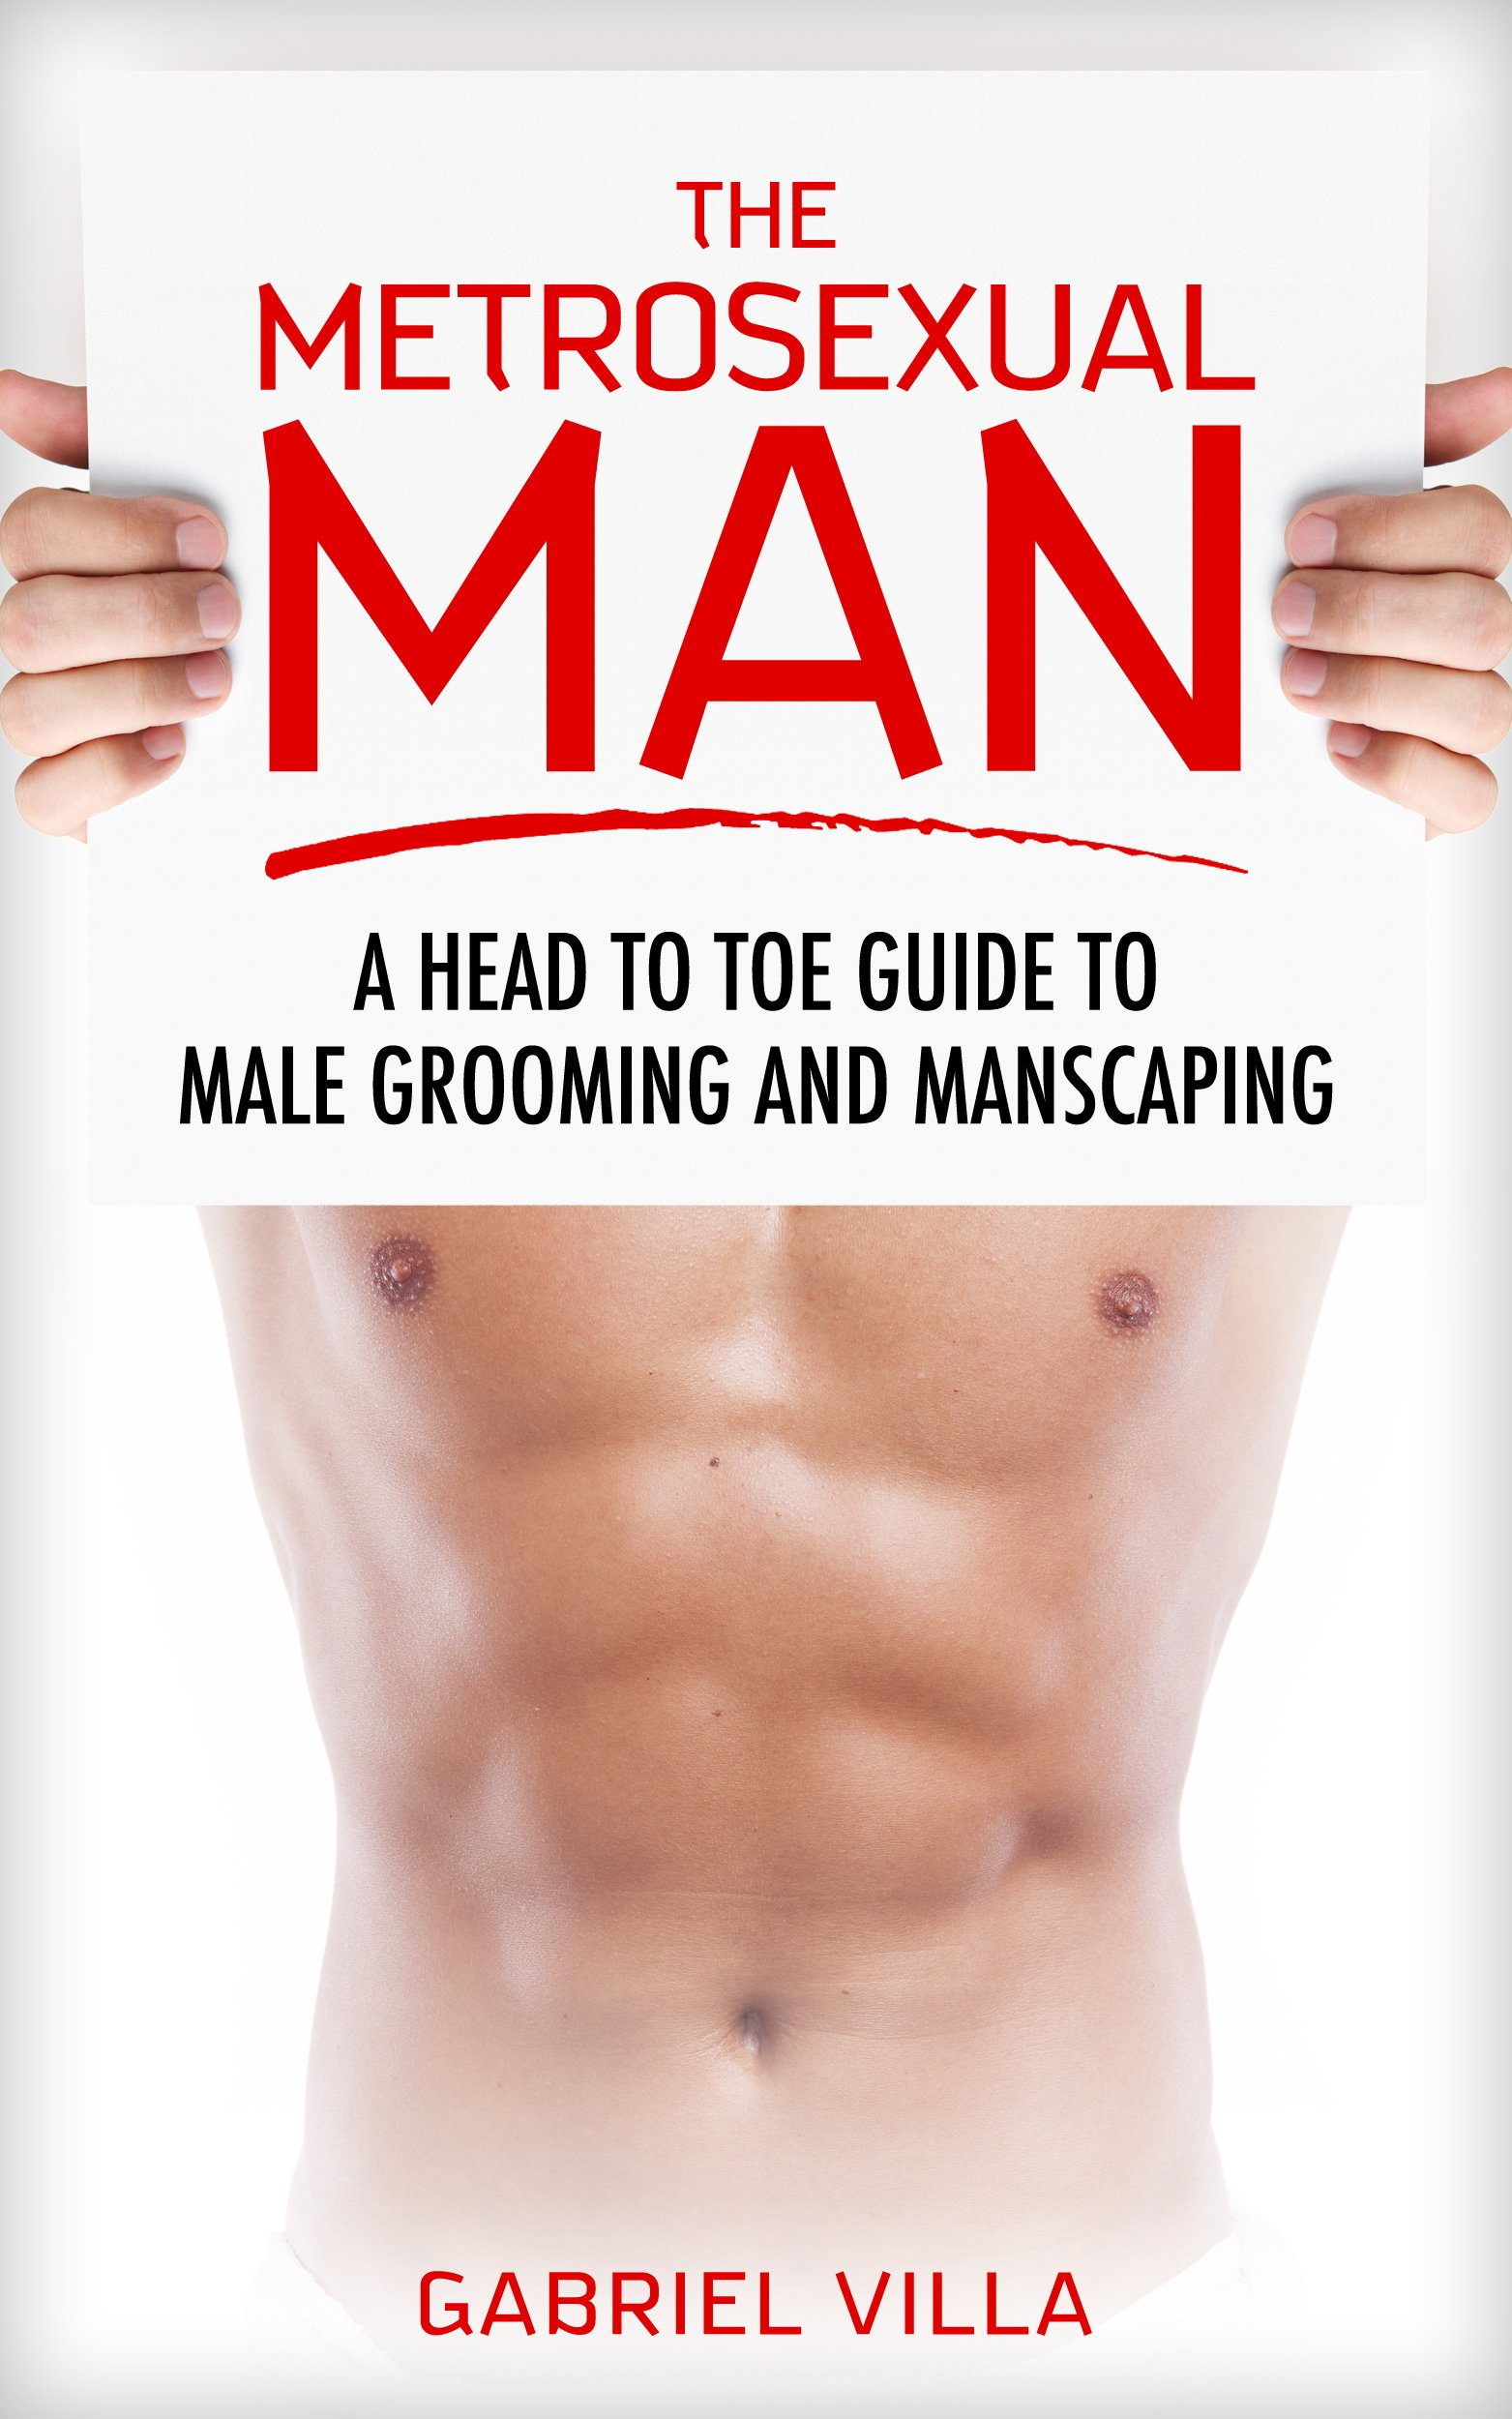 The Metrosexual Man: A Head to Toe Guide to Male